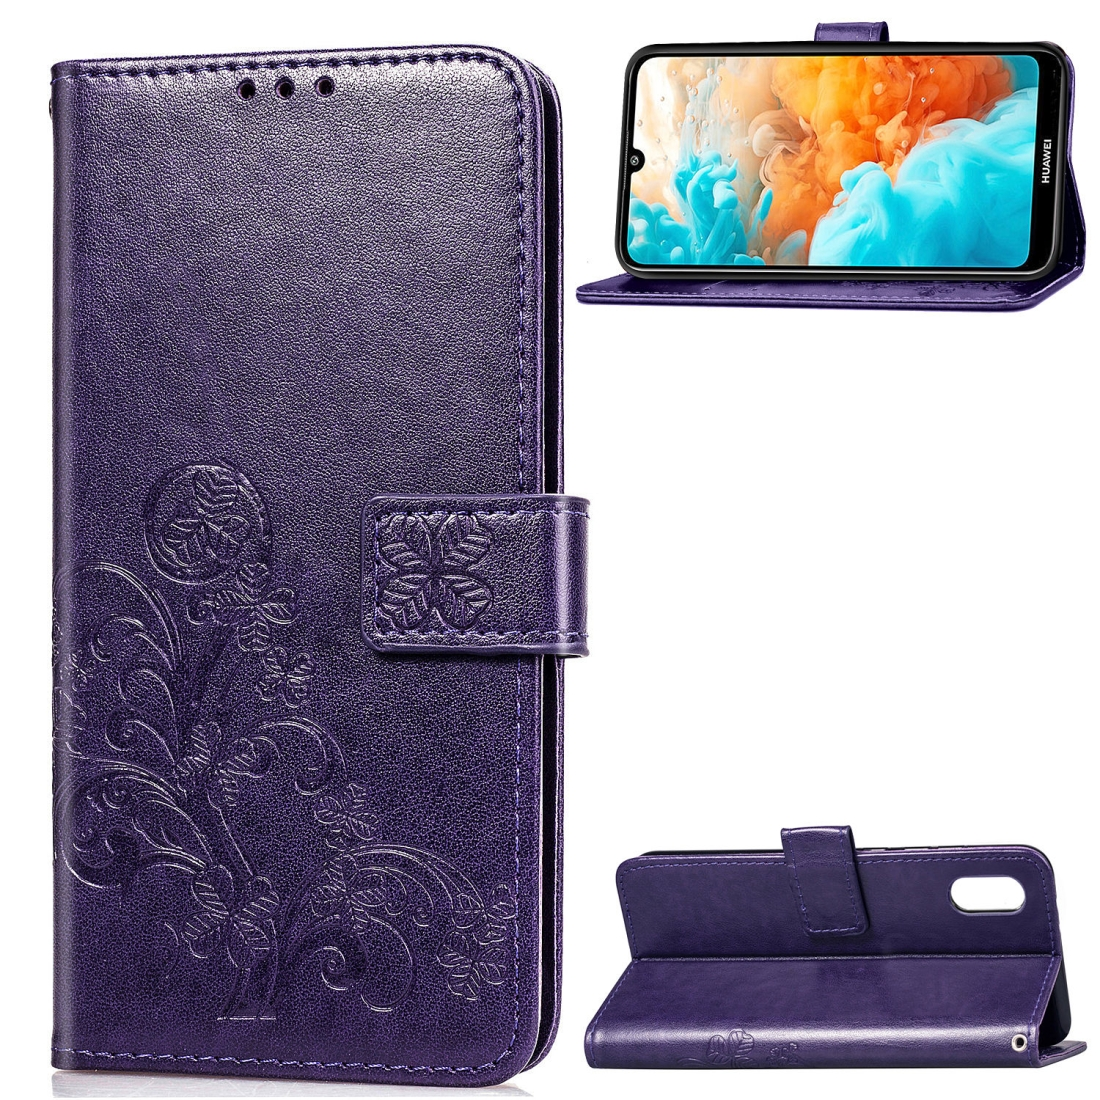 Lucky Clover Pressed Flowers Pattern Leather Case for Huawei Y6 Pro 2019 with Holder & Card Slots & Wallet & Hand Strap (Purple)